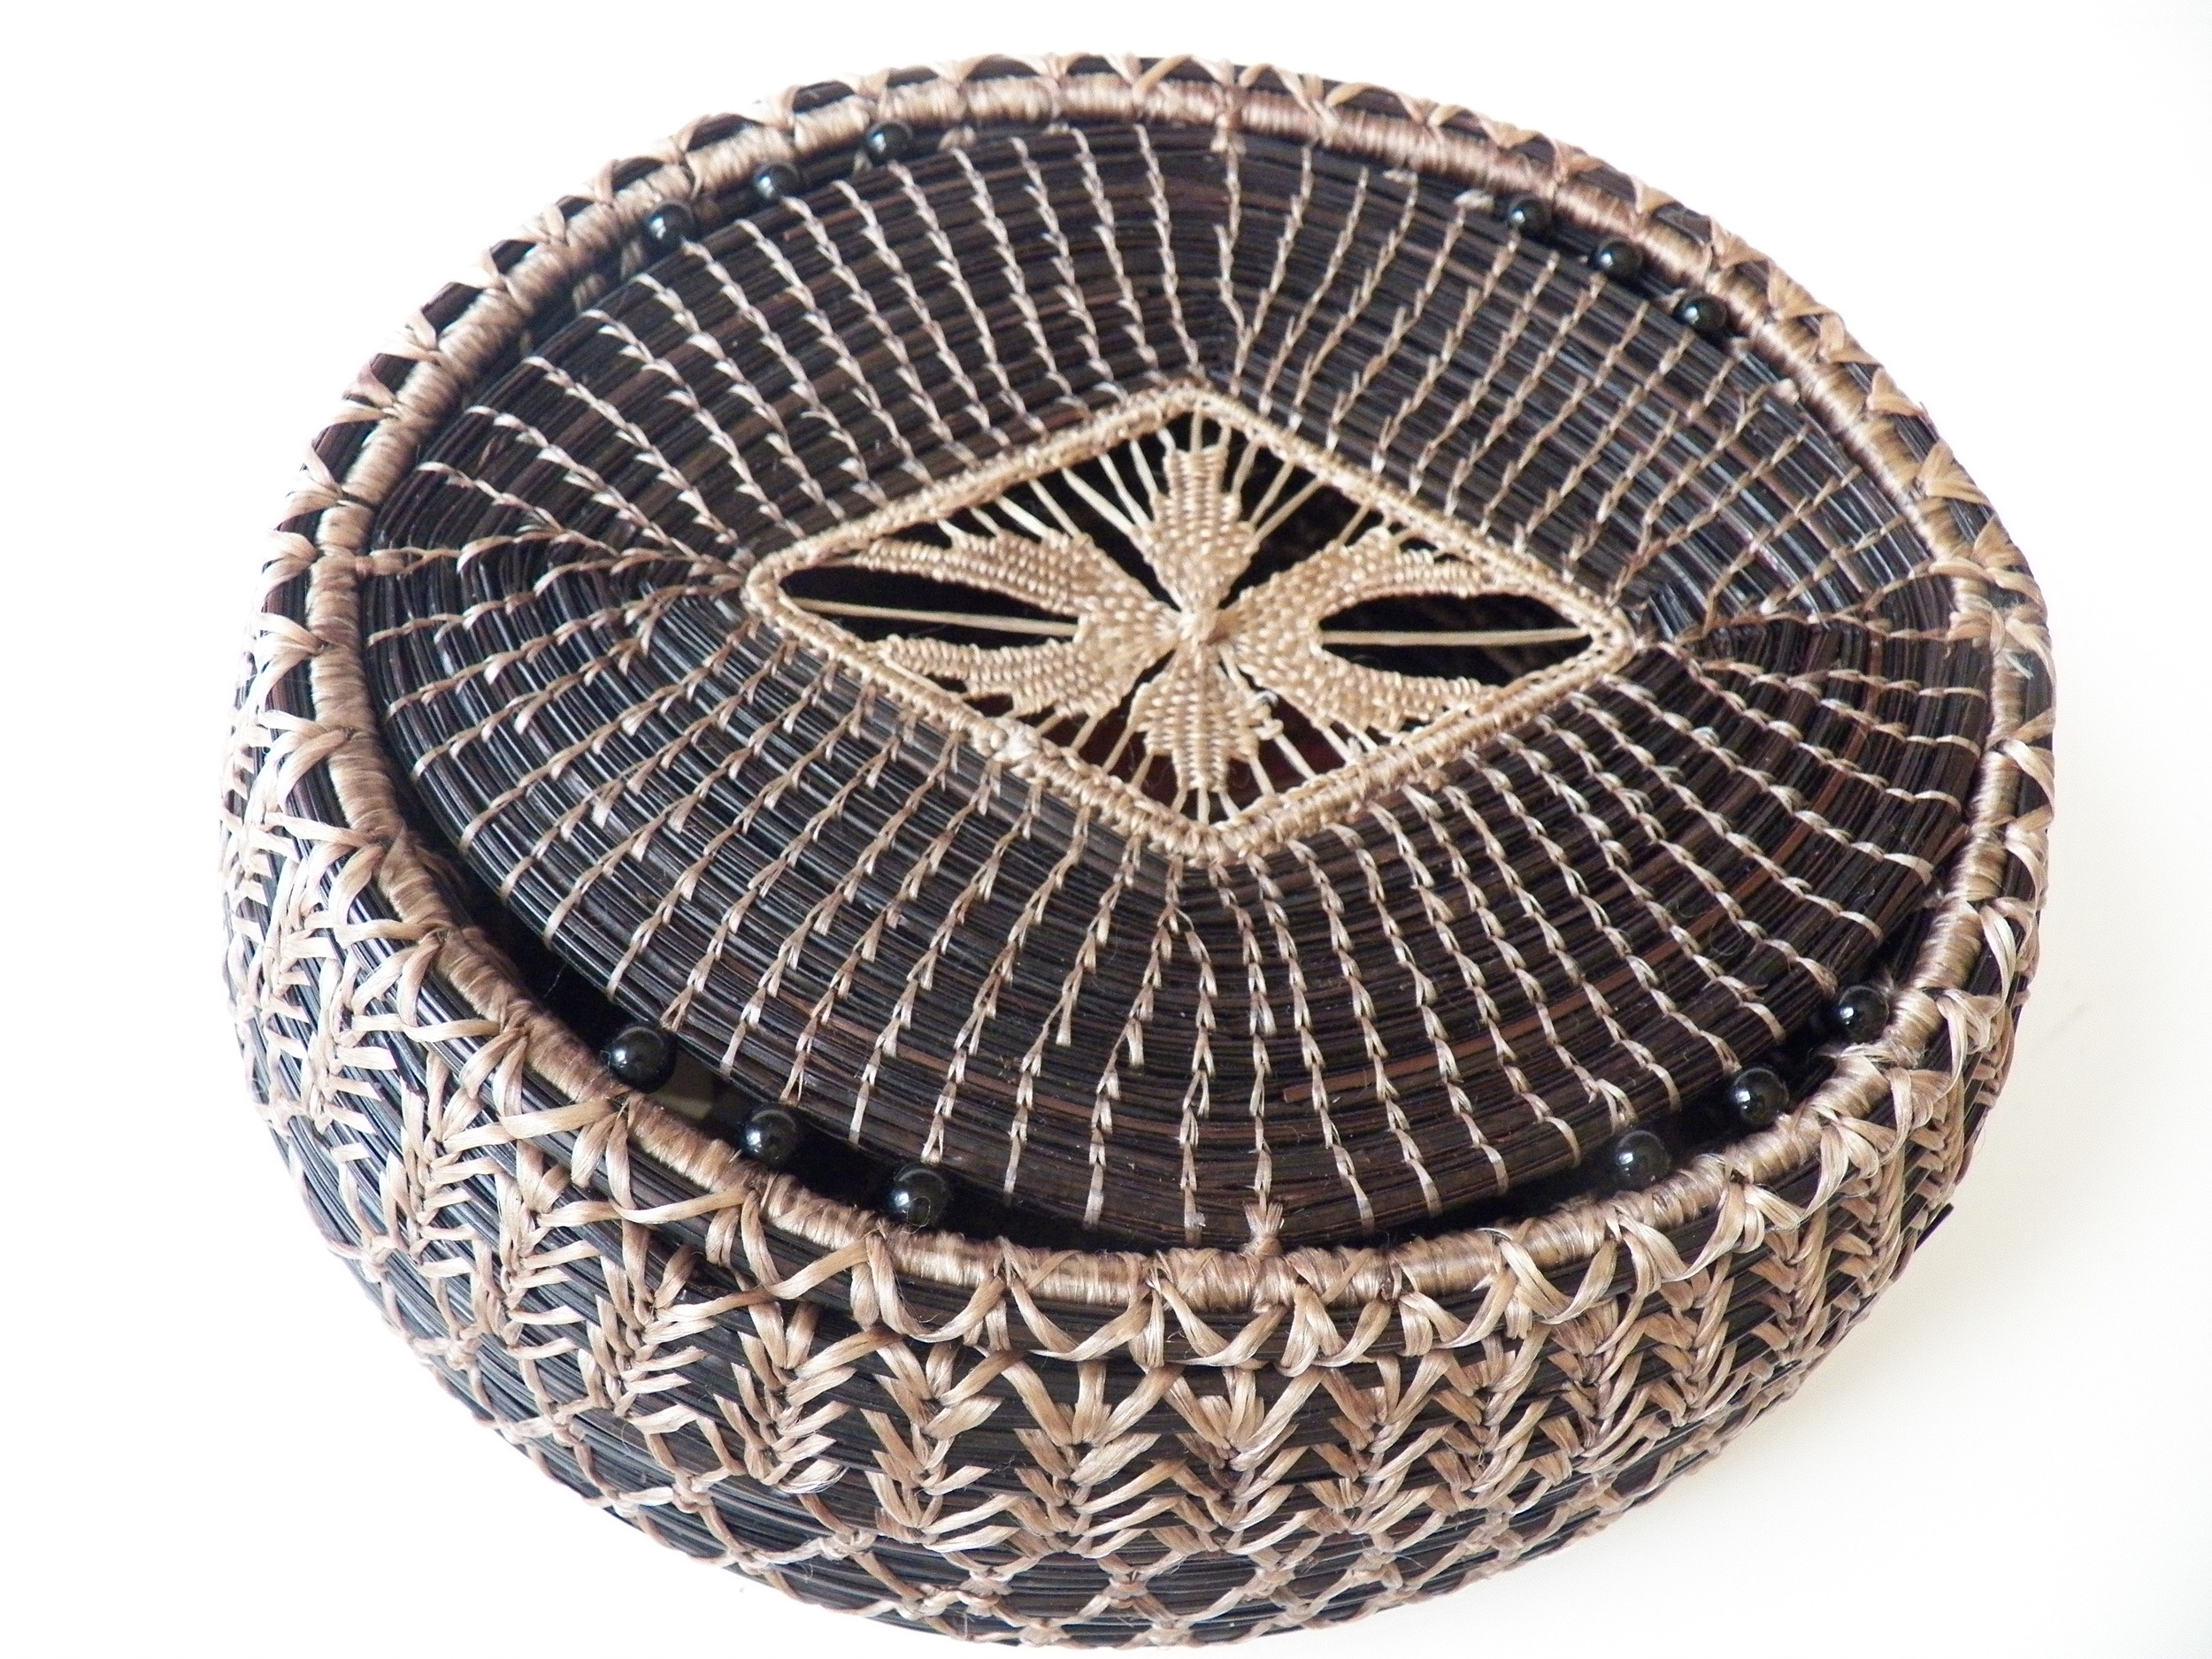 Large Black Lidded Basket With Beads